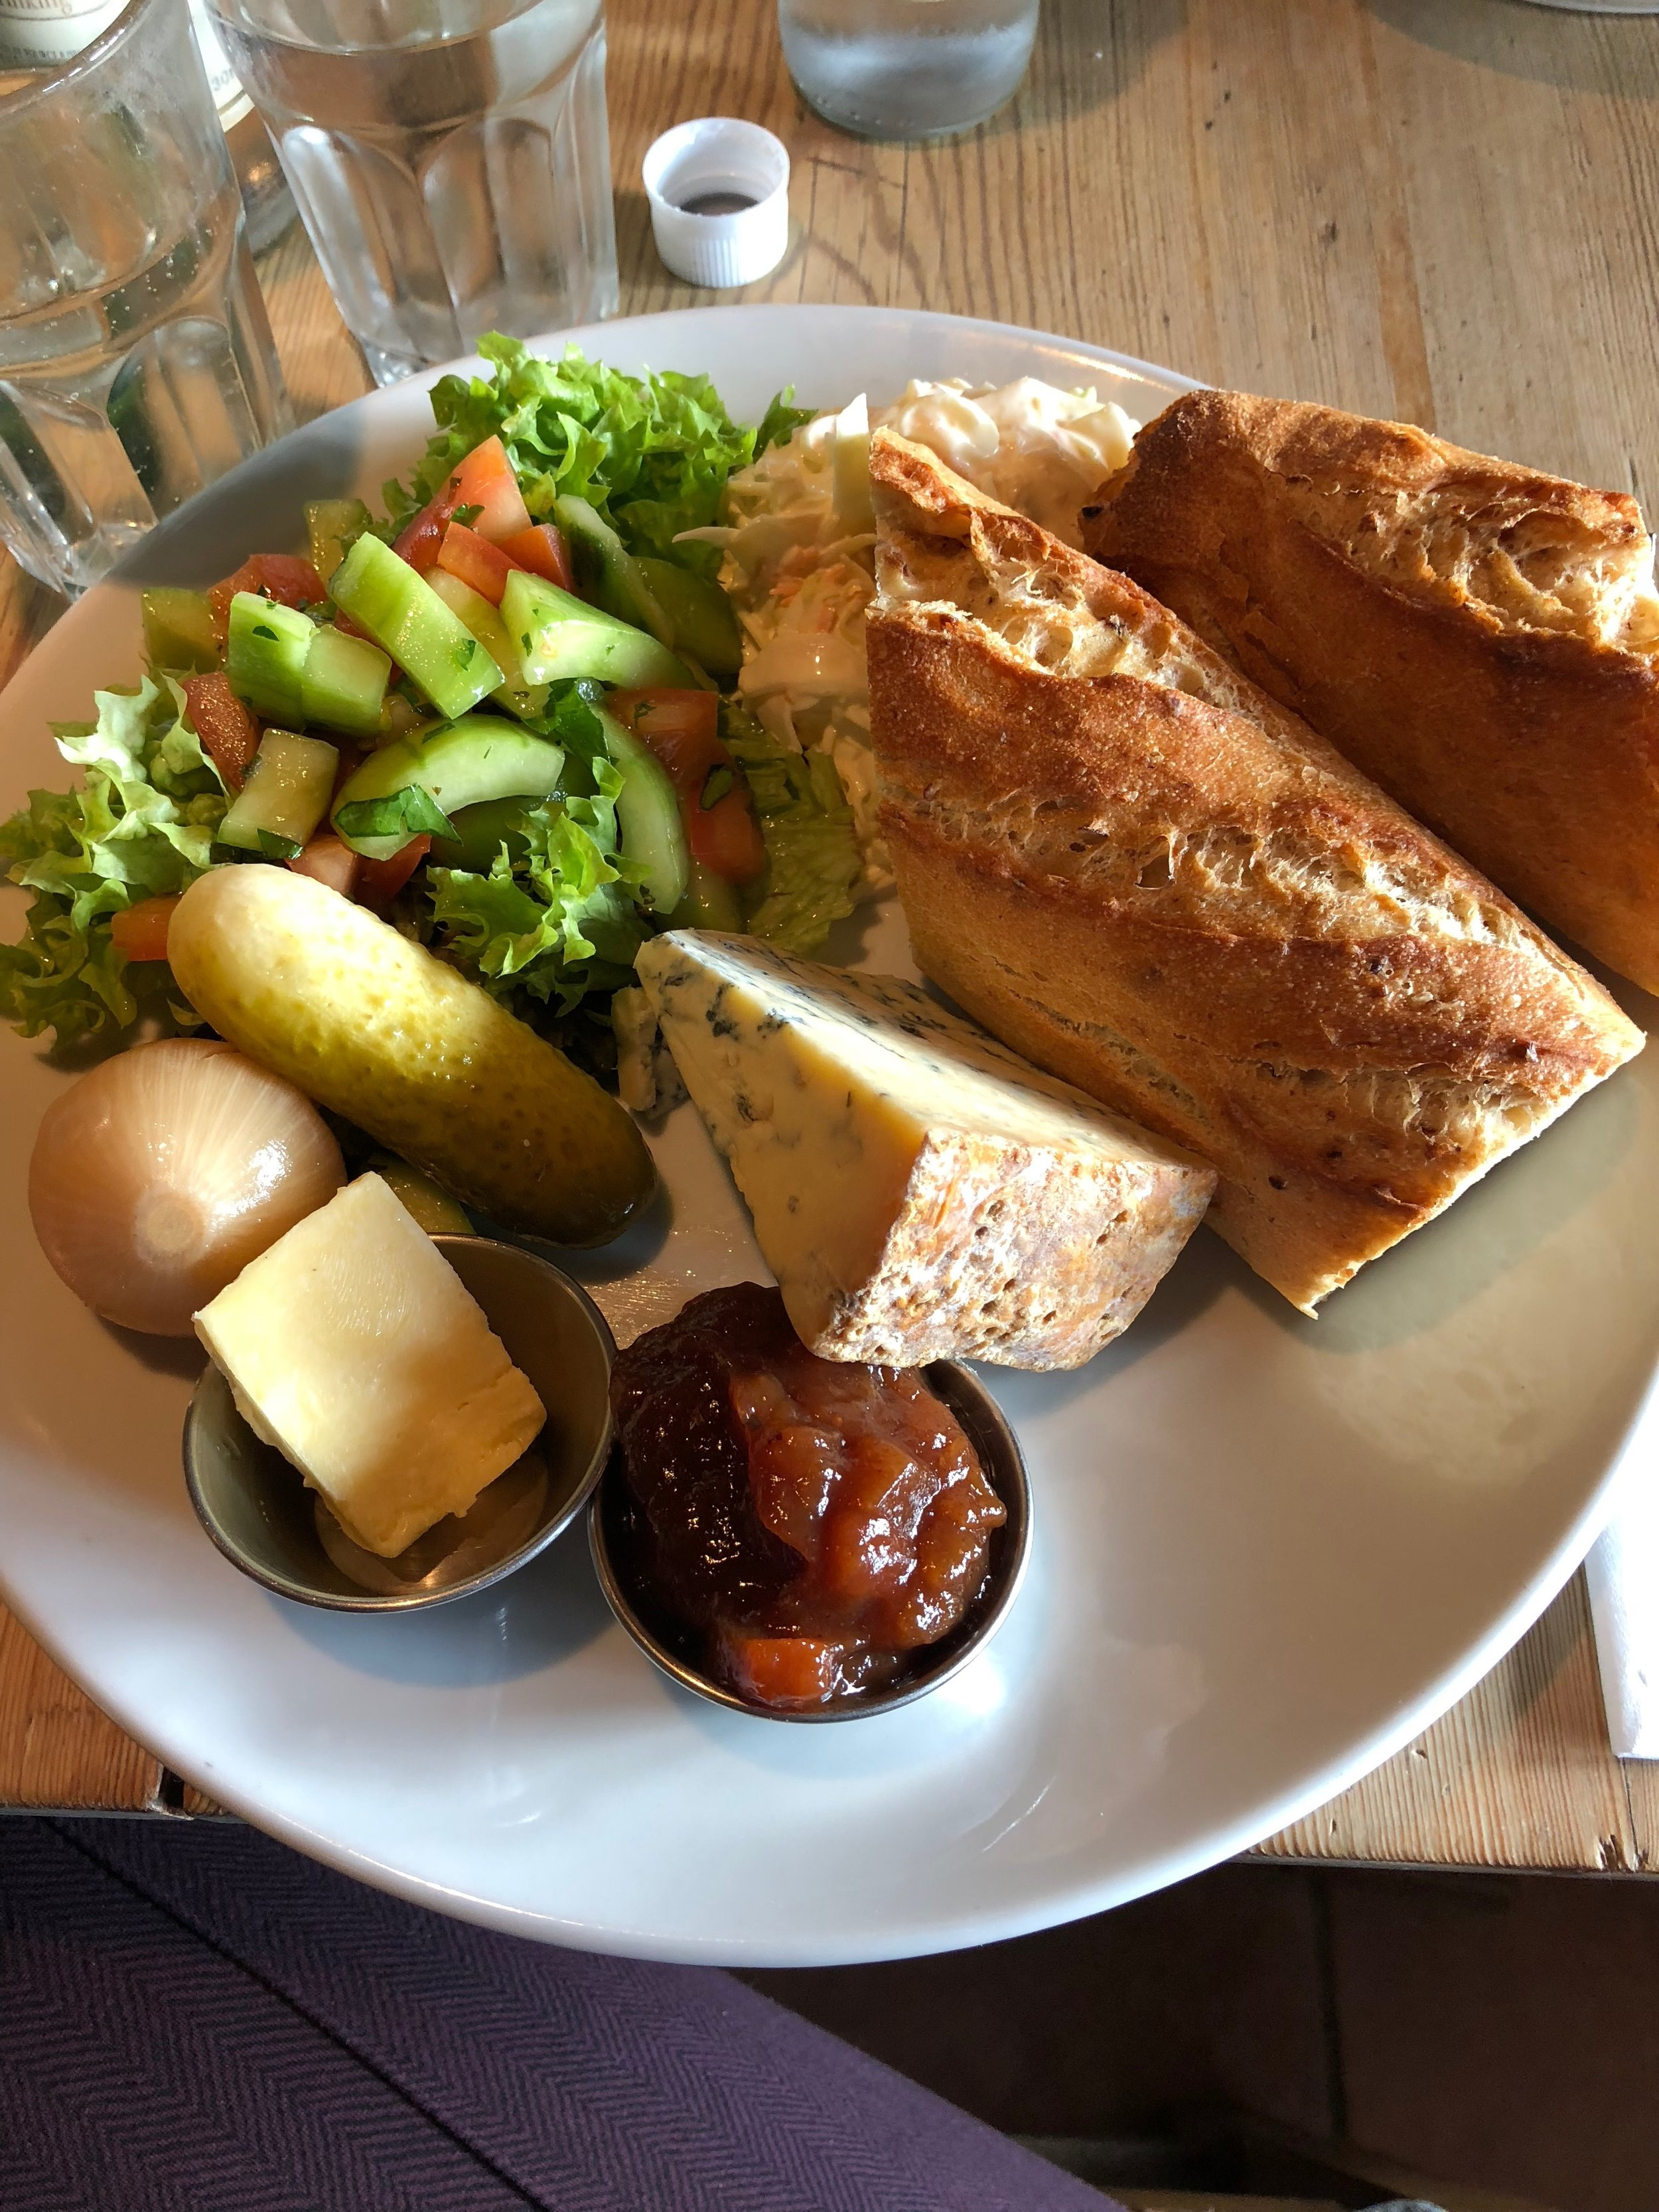 Ploughman's: bread, chutney, butter, stilton, pickled onion, pickled pickle, salad, coleslaw